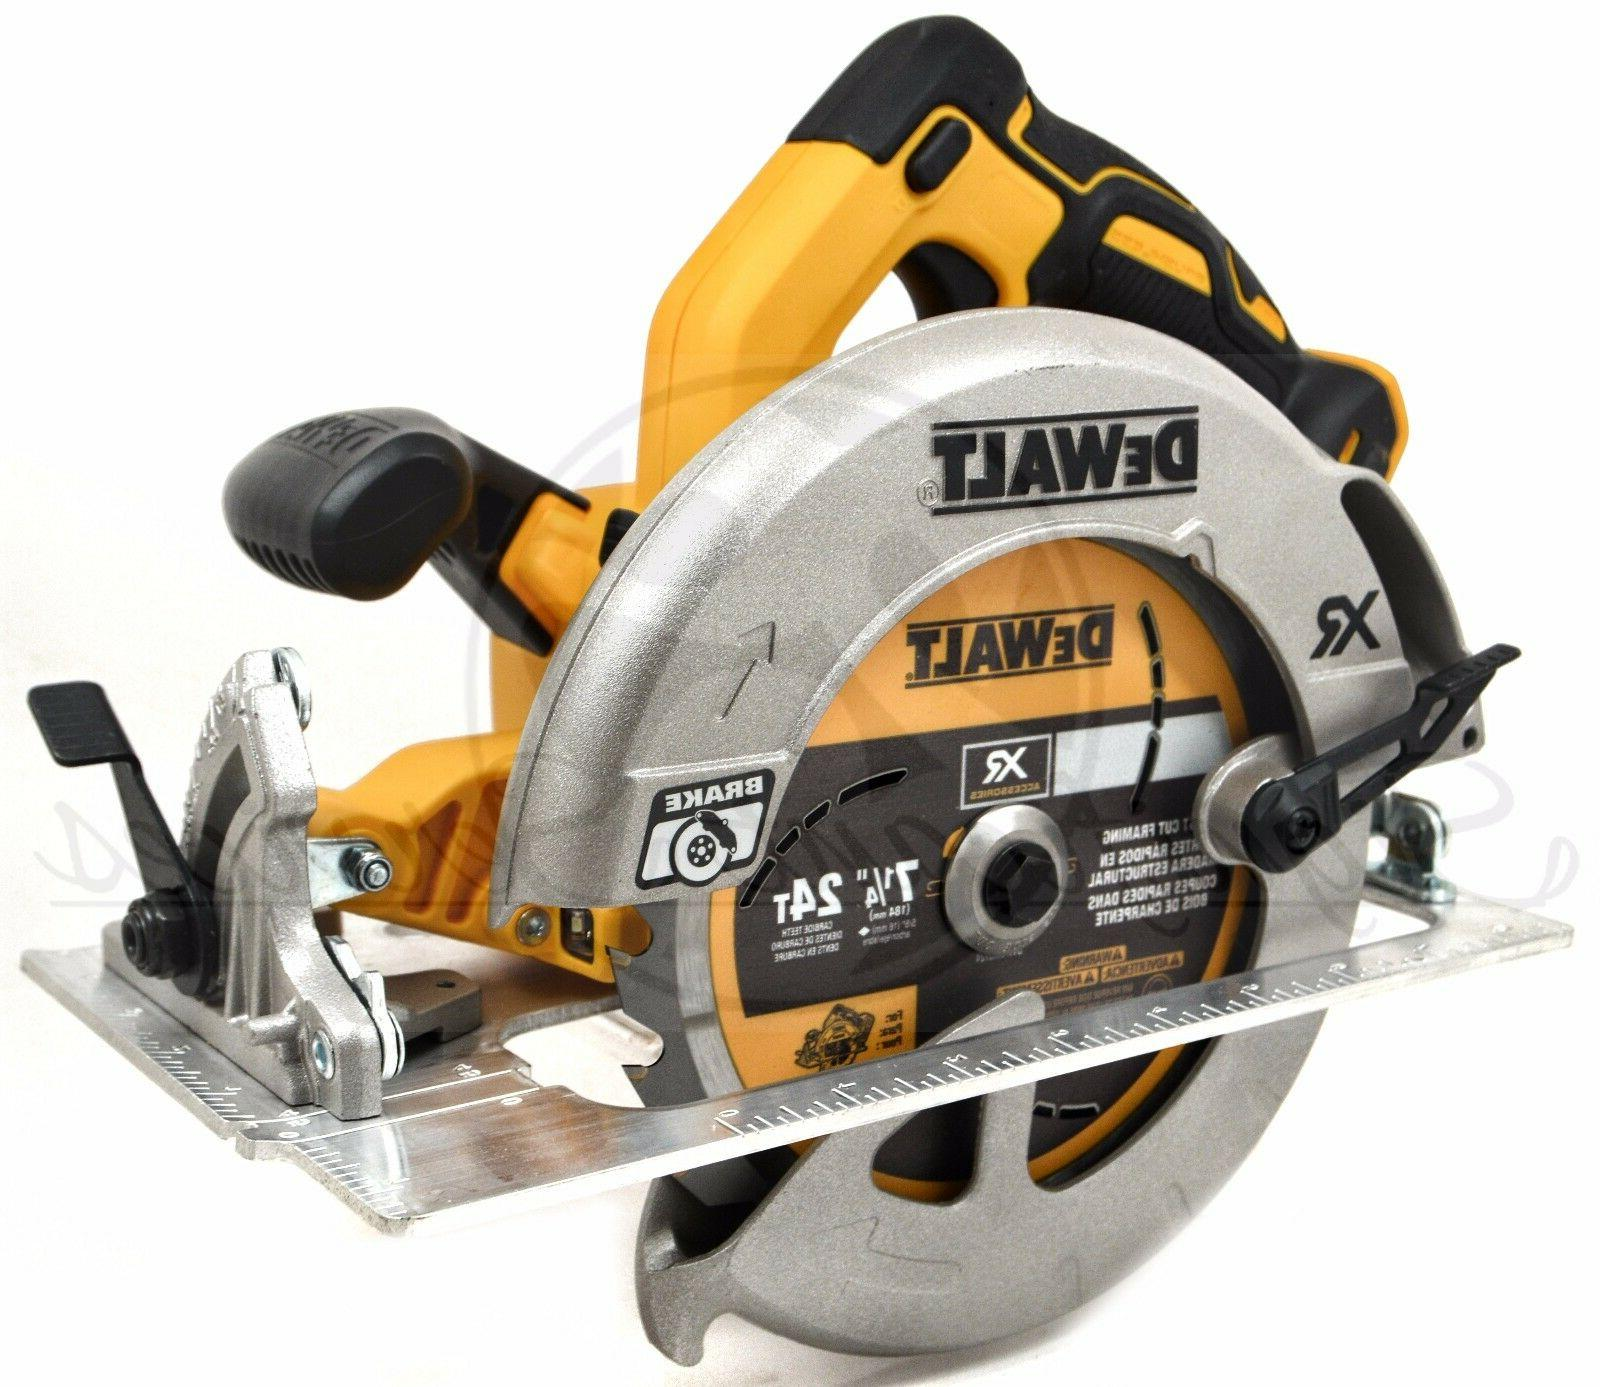 DEWALT MAX XR 5.0 Ah Lithium Cordless Circular Saw Kit